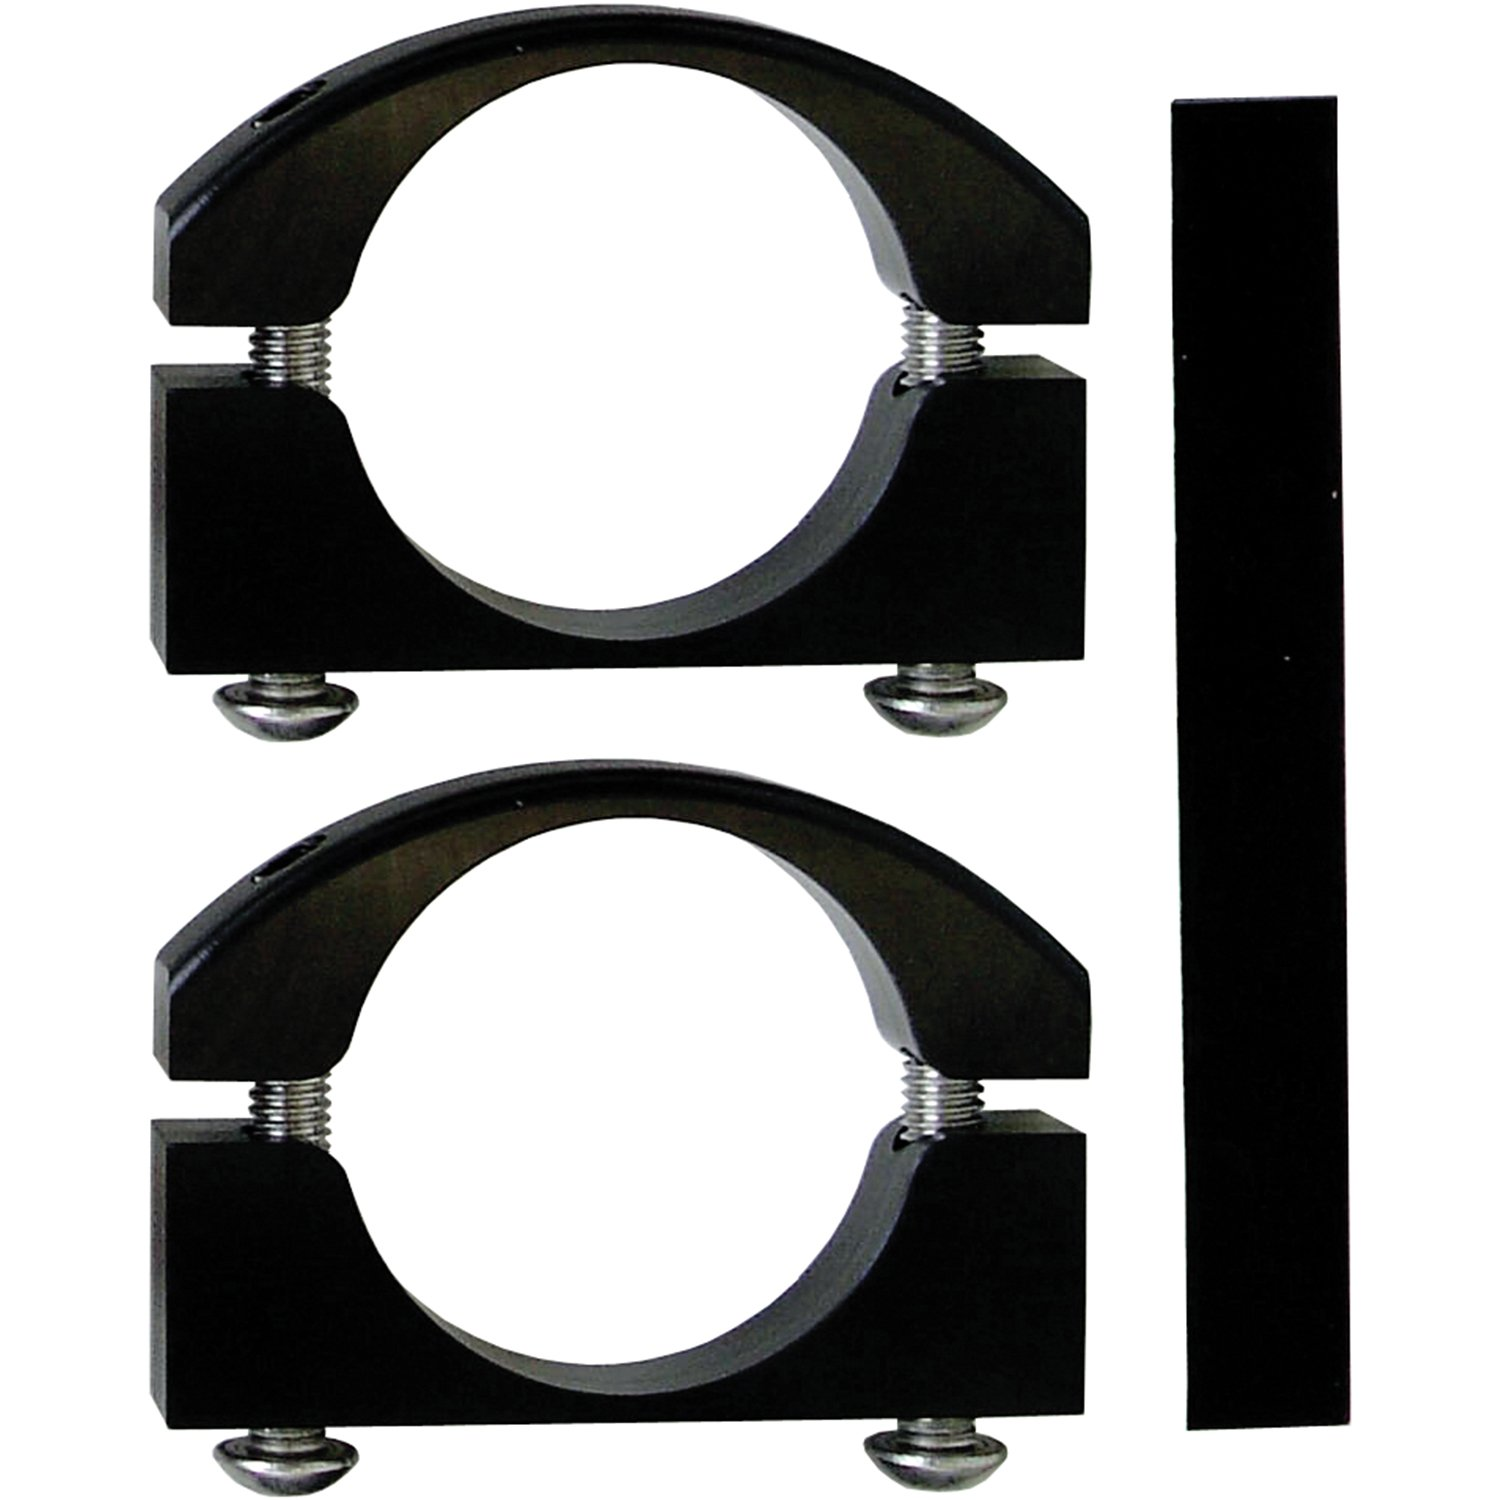 Power Tank ABC-2465 Billet Aluminium Black Large Jeep Roll Bar Clamp - Pair by Power Tank